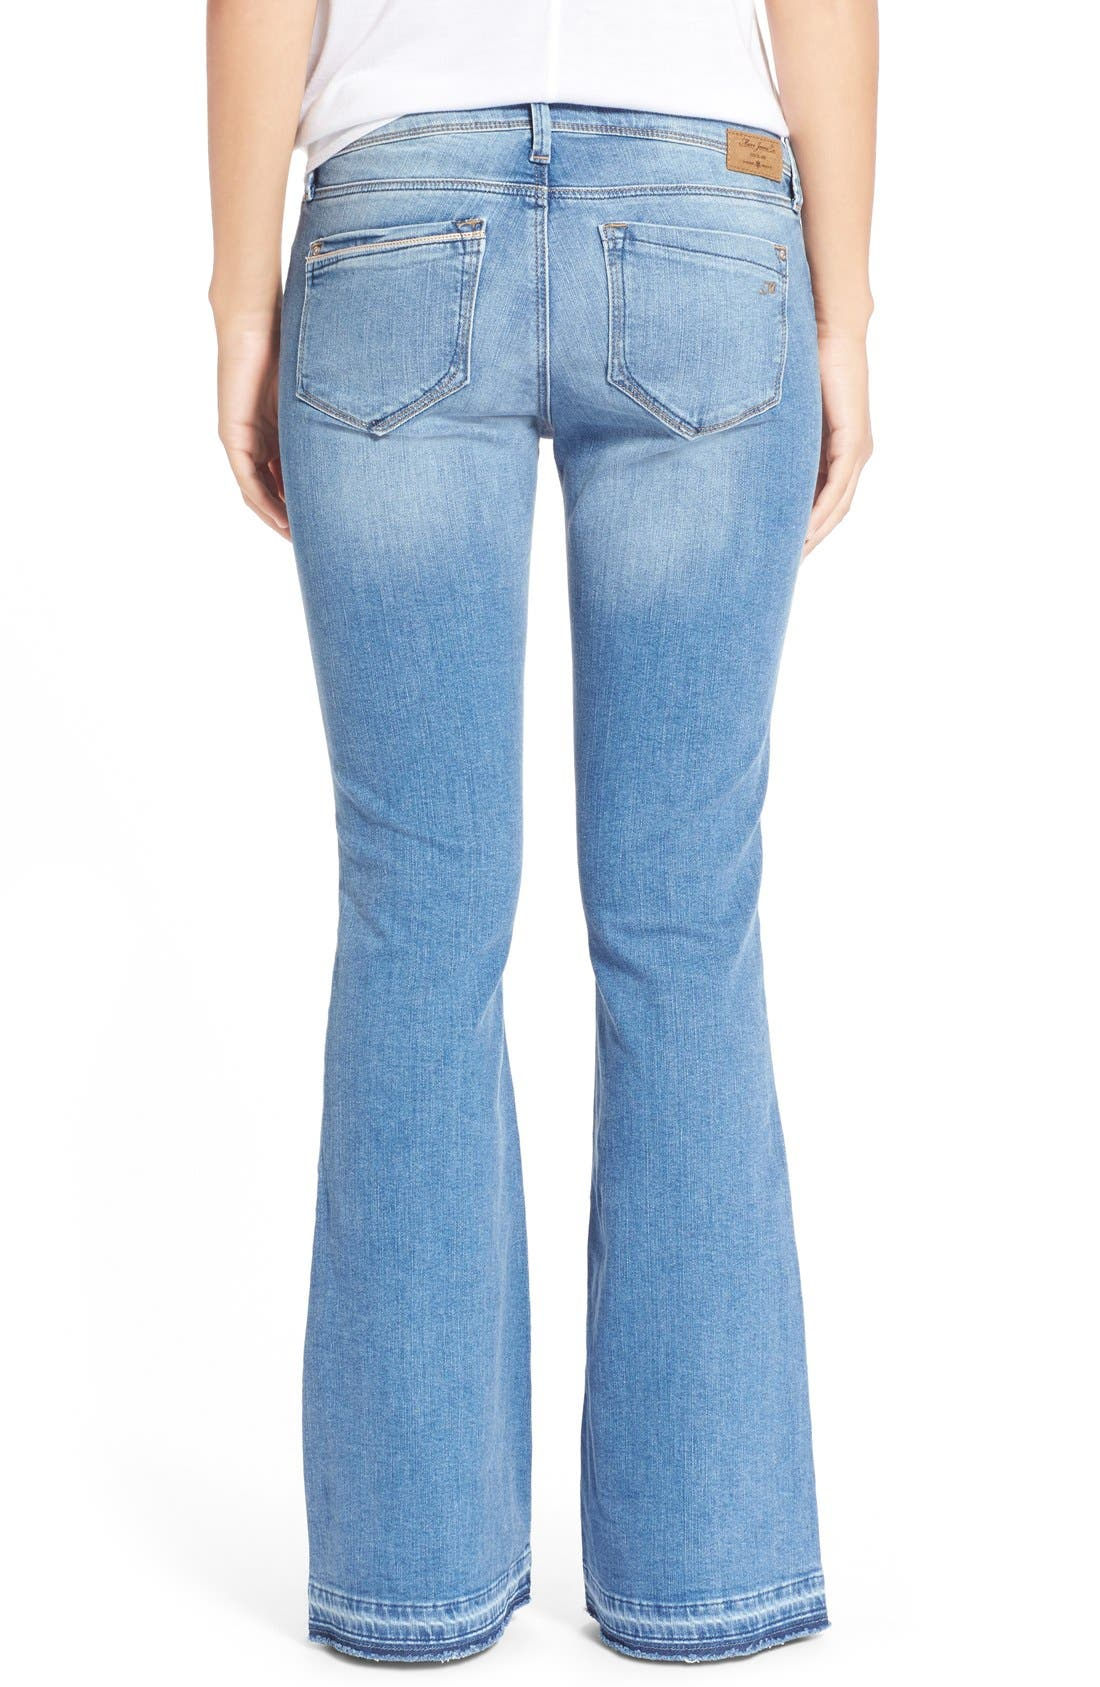 'Peace' Stretch Flare Leg Jeans,                             Alternate thumbnail 2, color,                             Light Ripped